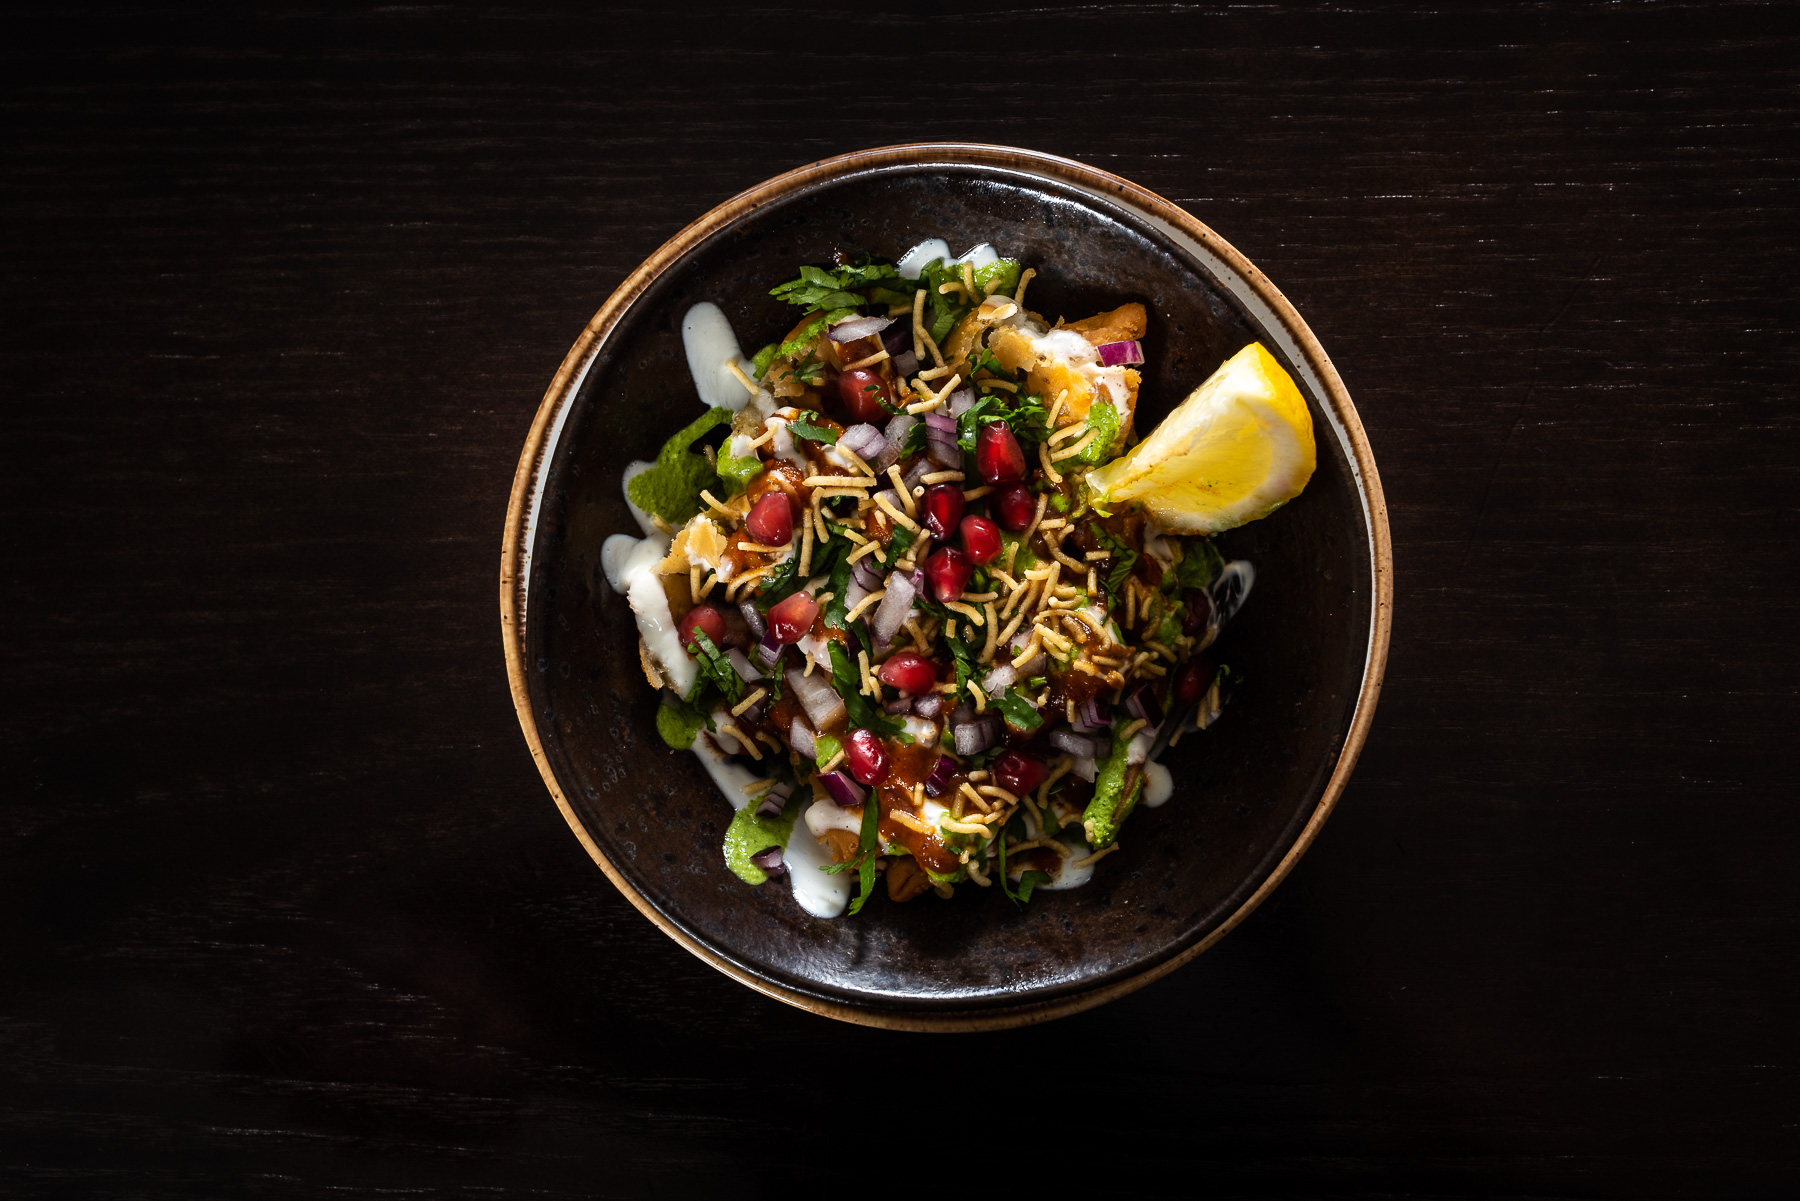 Top down image of an Indian salad with fresh lemon on dark wooden table